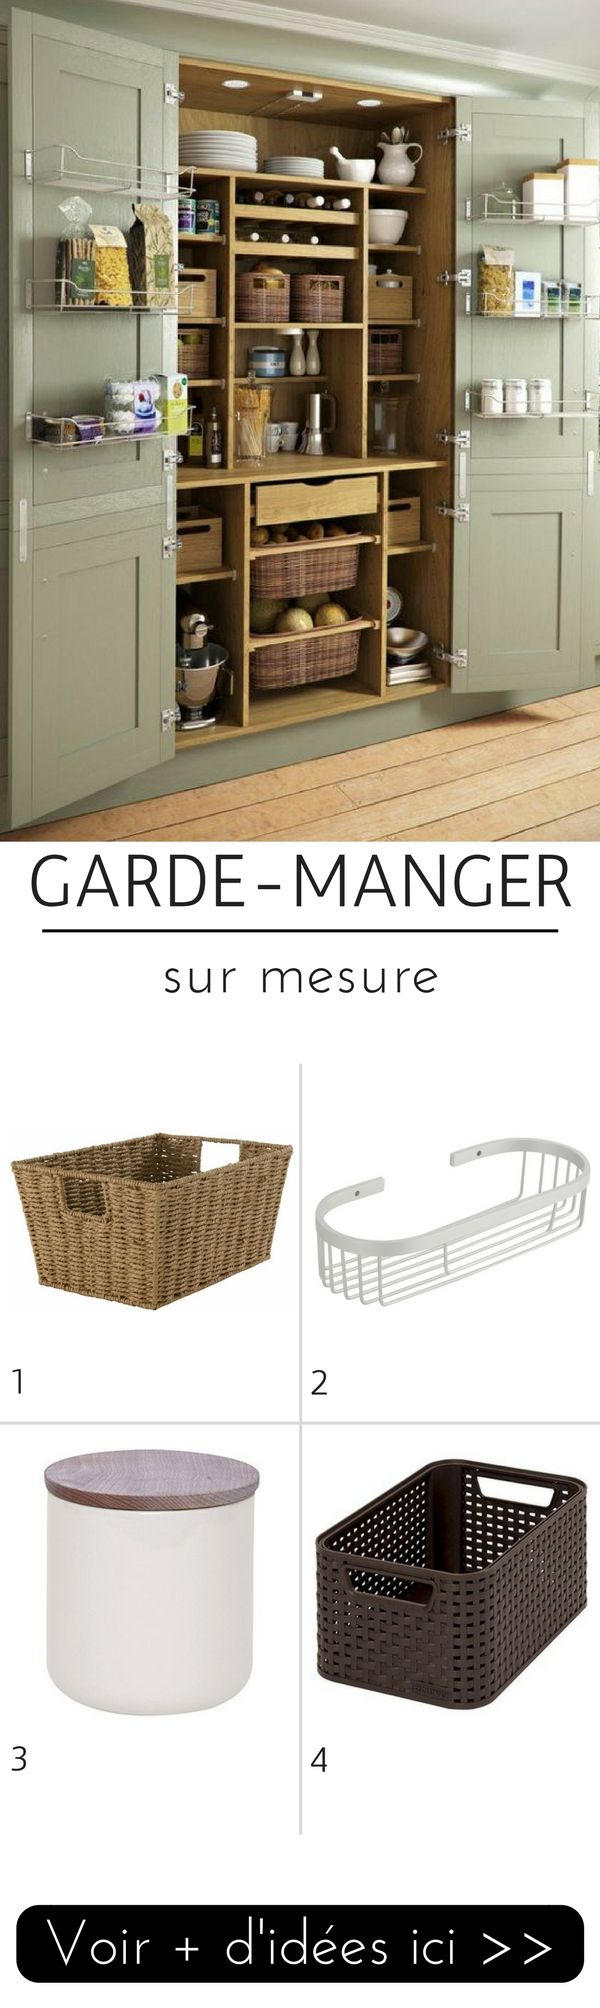 gardemanger sur mesure dans le placard de la cuisine with meuble garde manger cuisine. Black Bedroom Furniture Sets. Home Design Ideas